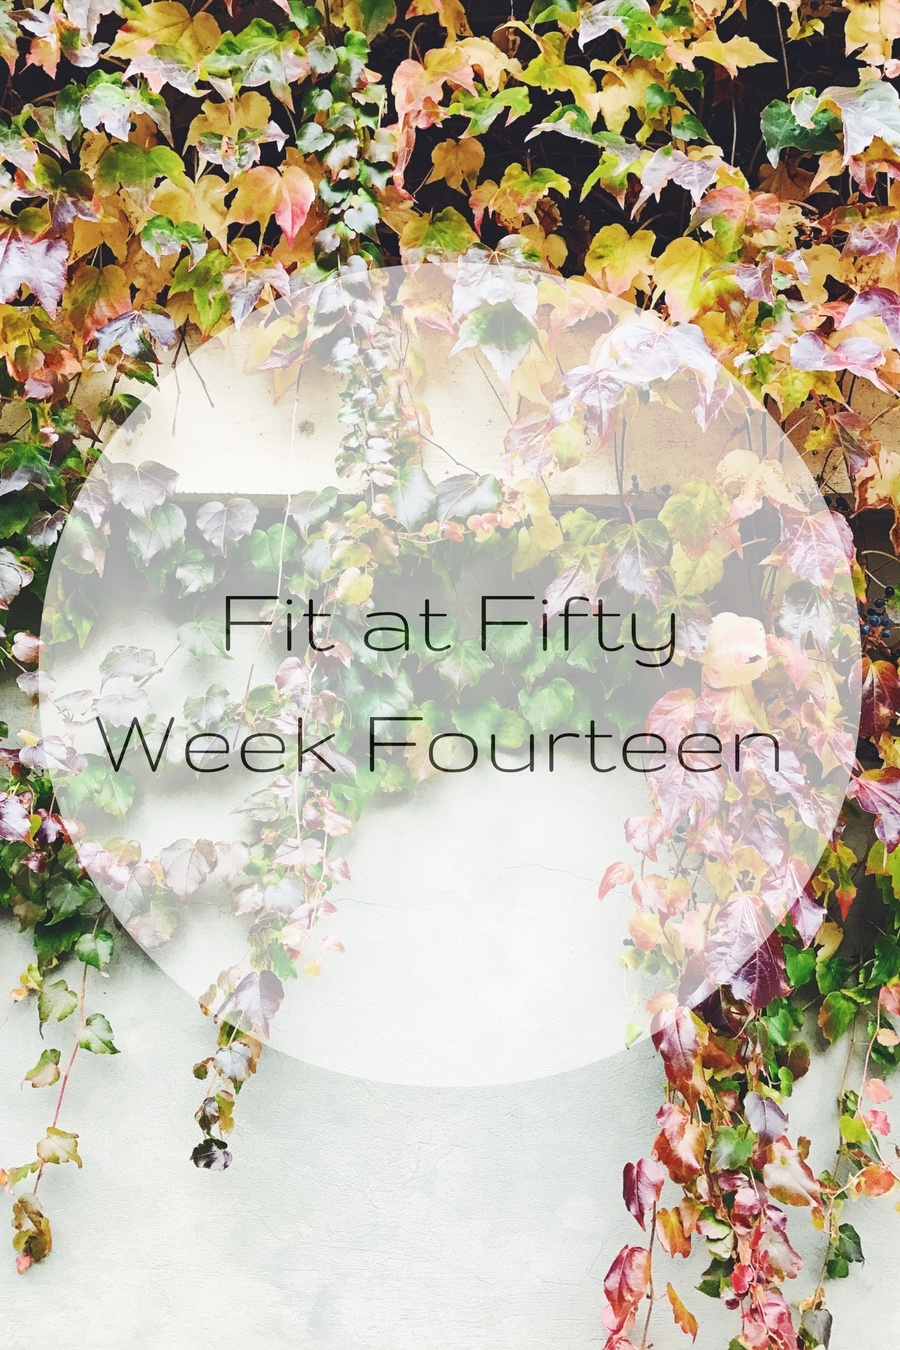 Fit at Fifty Week Fourteen